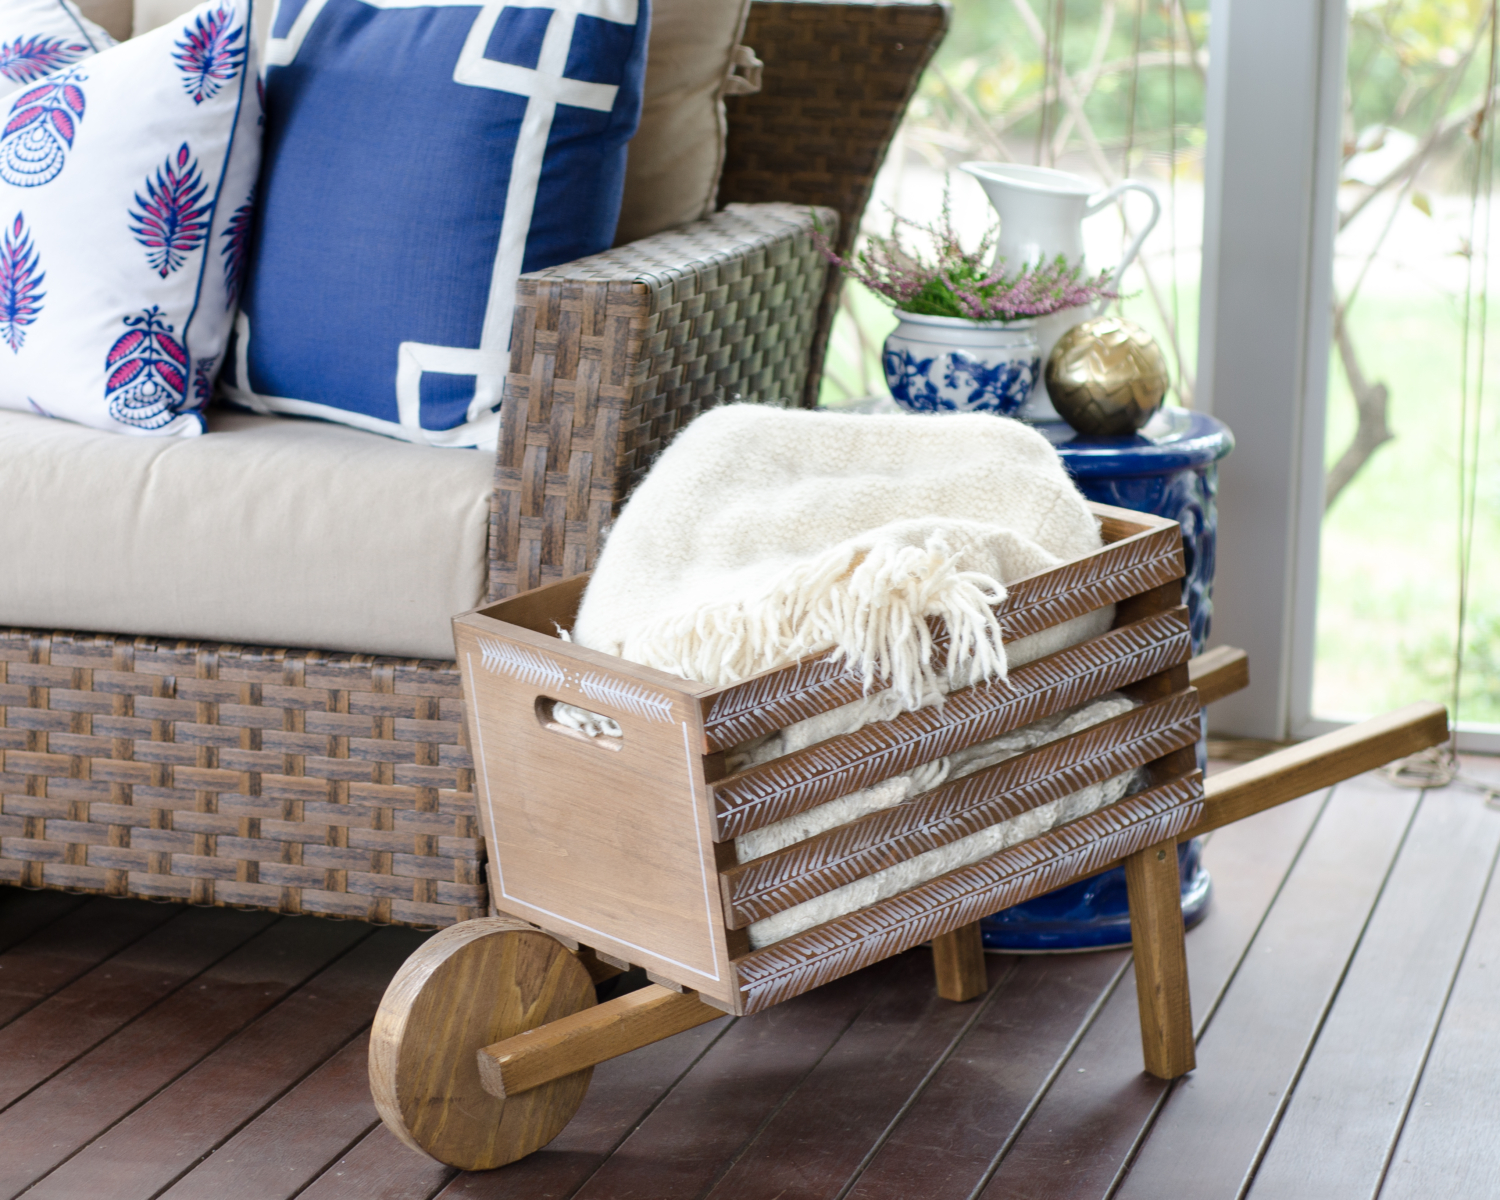 A DIY rustic wheelbarrow with a hand-painted herringbone pattern, perfect for all kinds of fall decorating! #DIHWorkshop #sponsored